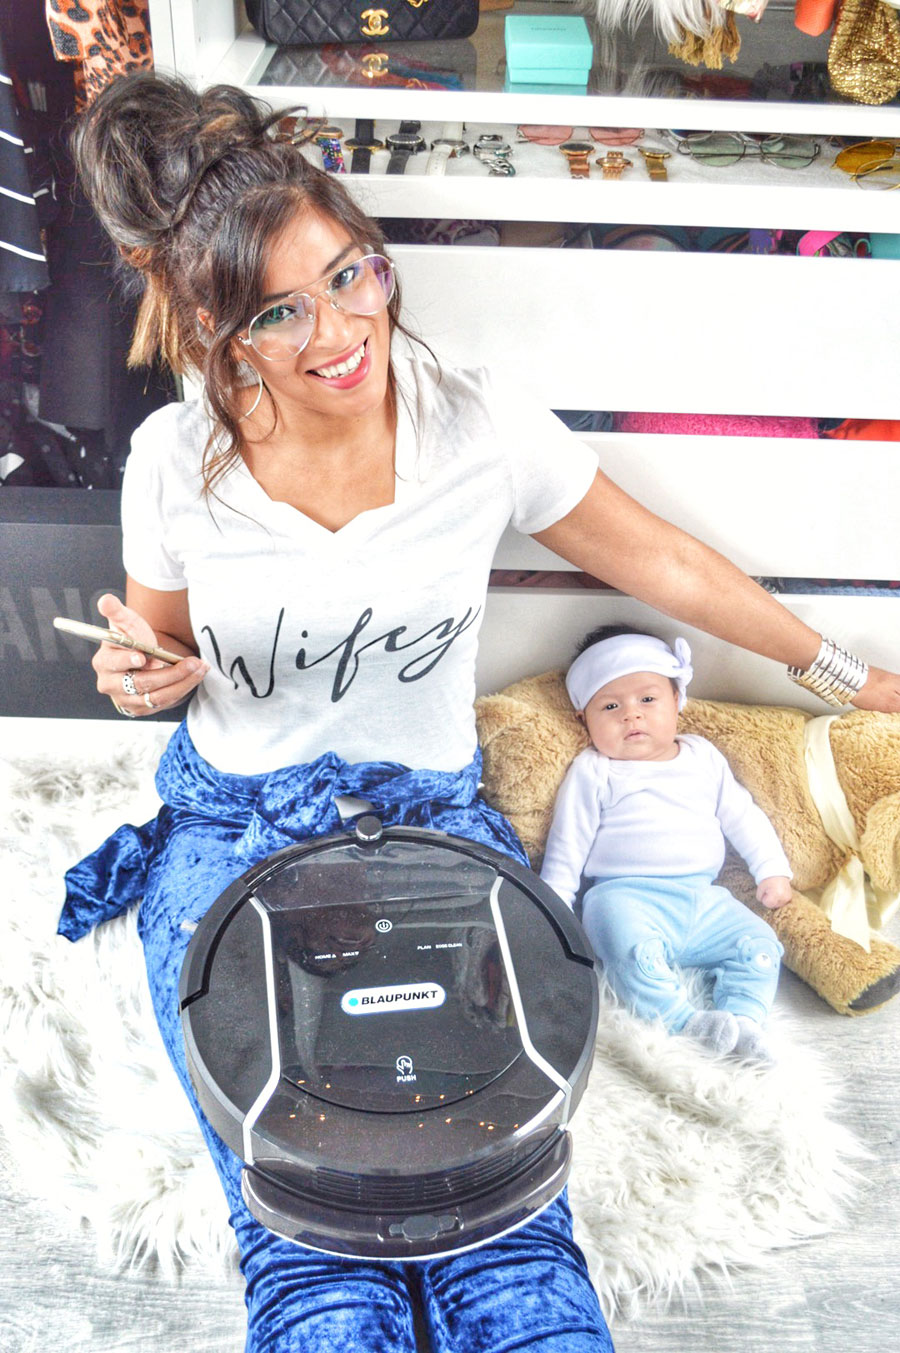 Brand new mother Esmeralda Attema is fan of the automatic Blaupunkt Bluebot XSmart robot Vacuum Cleaner